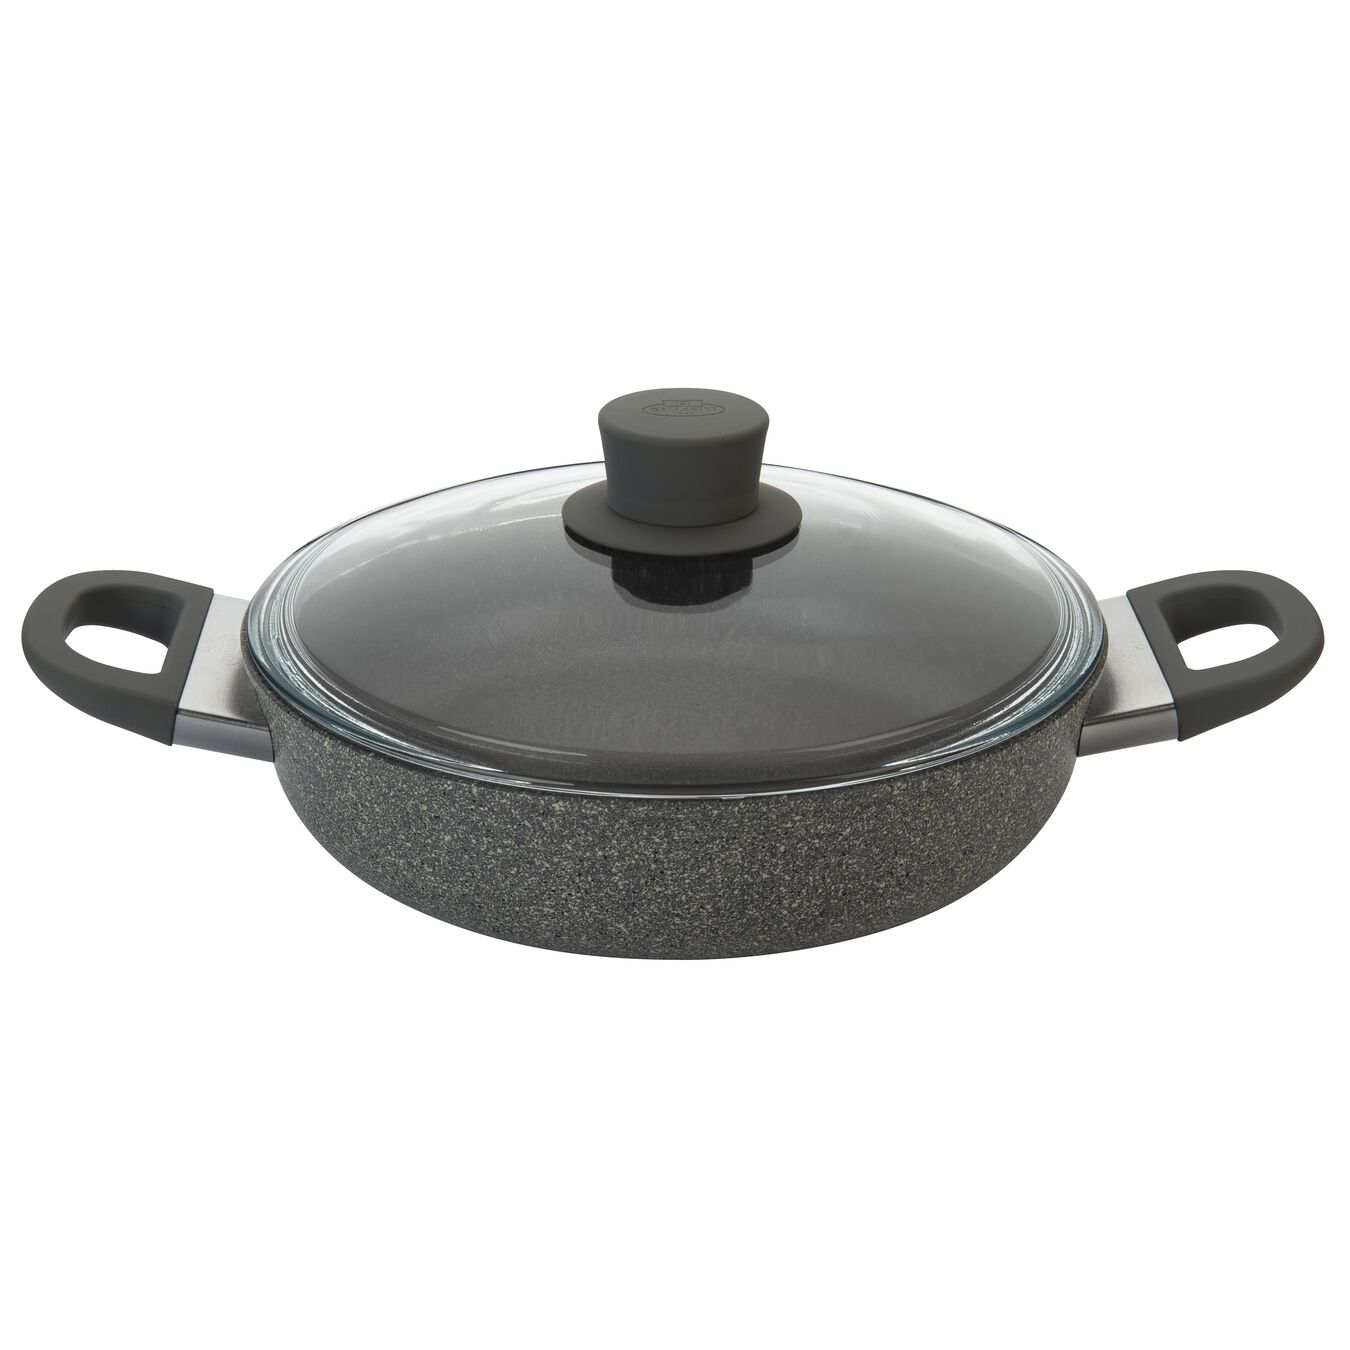 Aluminum round Saucier and sauteuse with glass lid, stone grey,,large 1